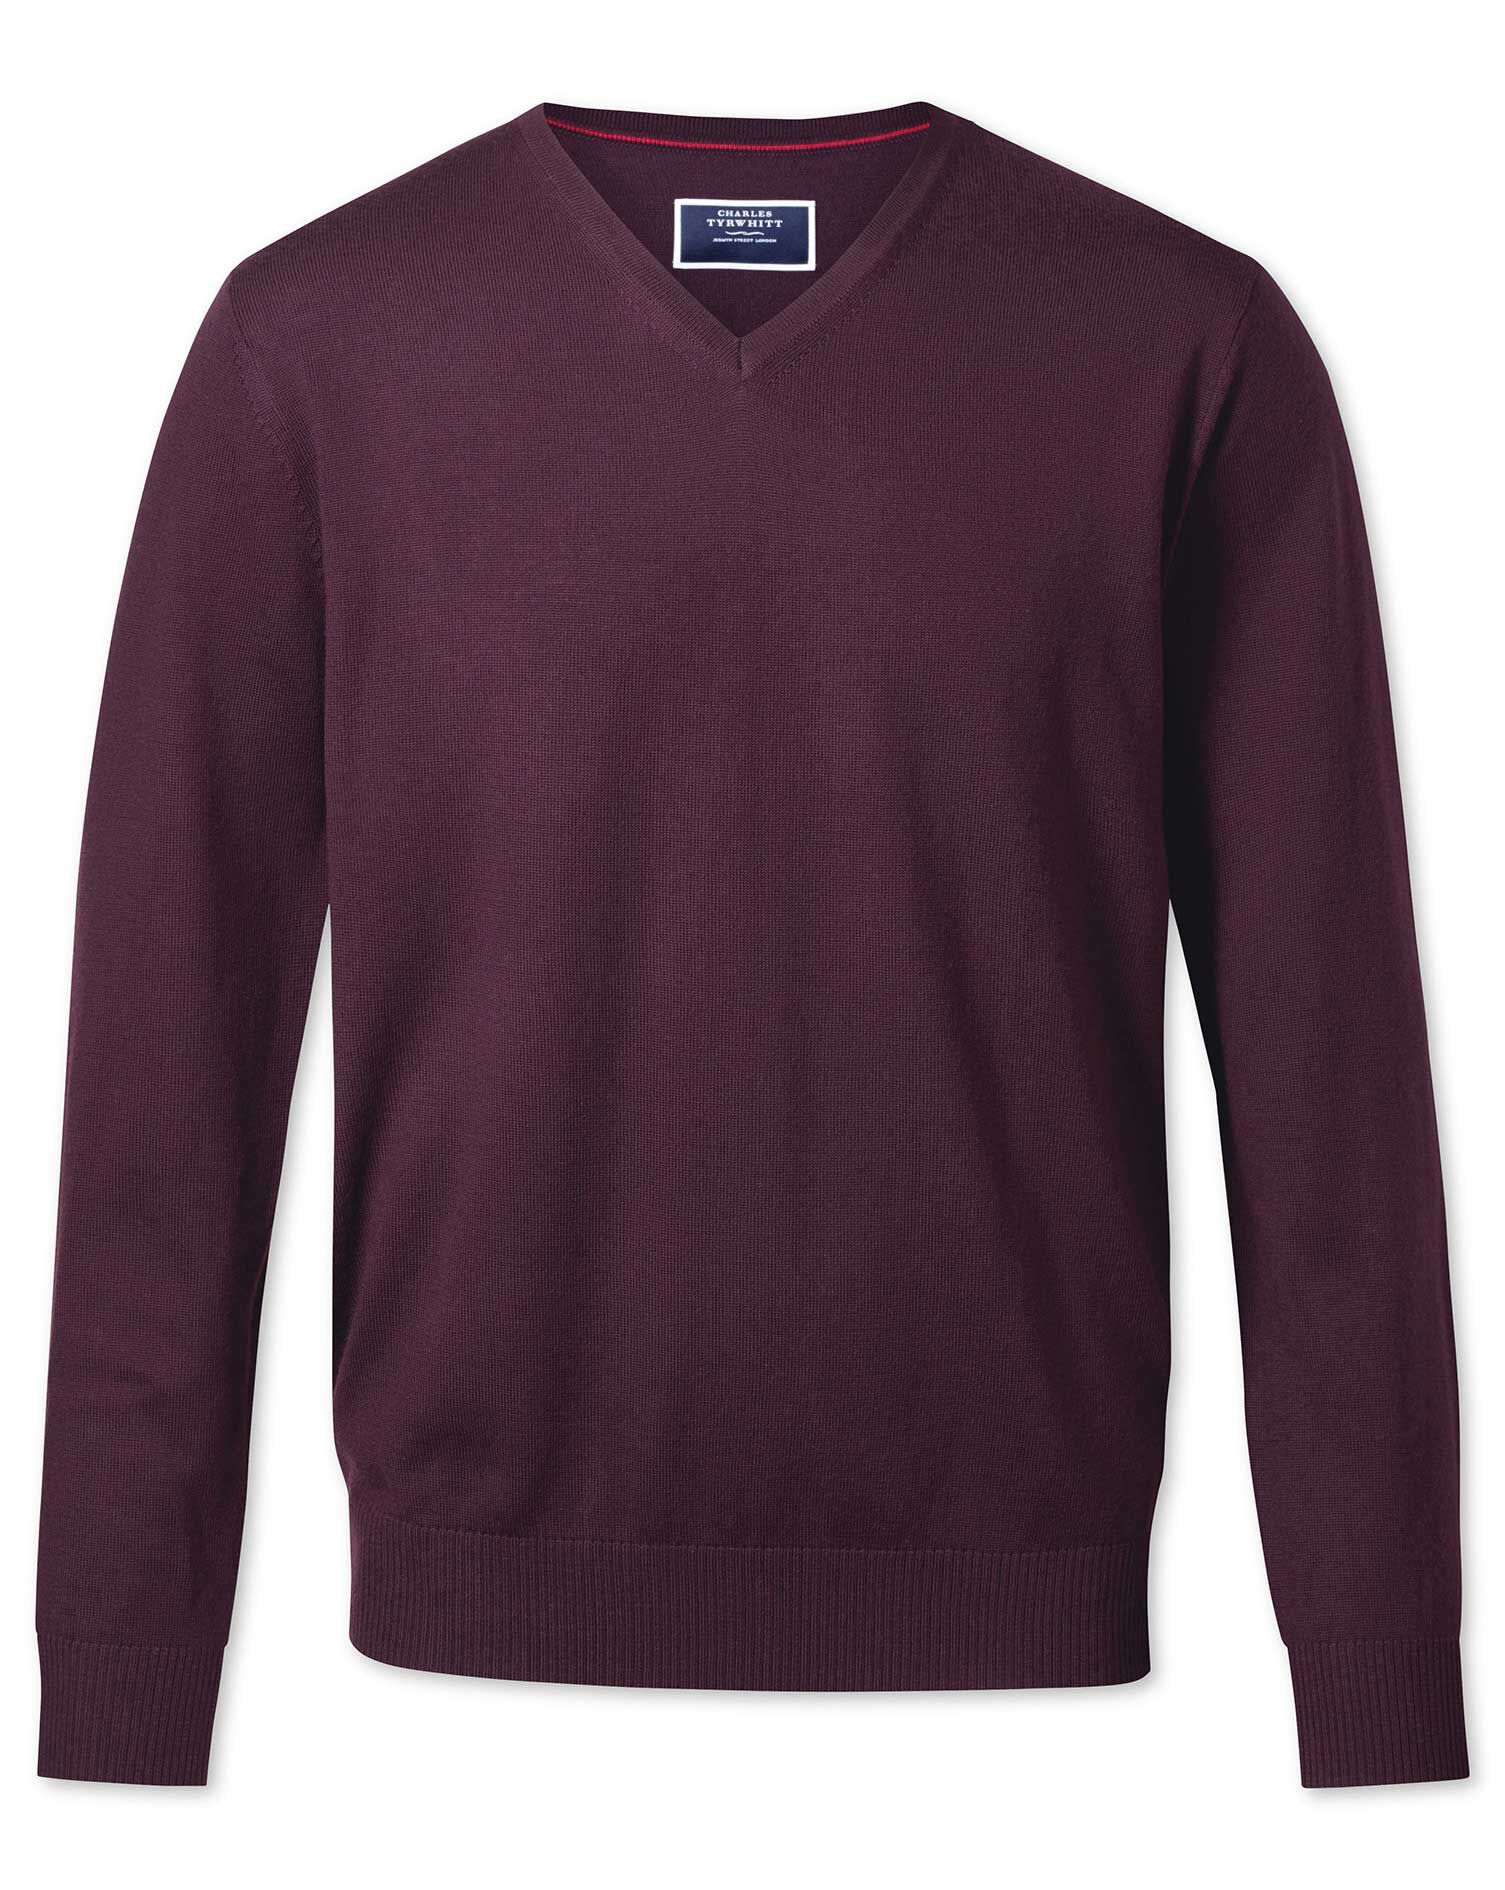 Wine Merino Wool V-Neck Jumper Size XXXL by Charles Tyrwhitt